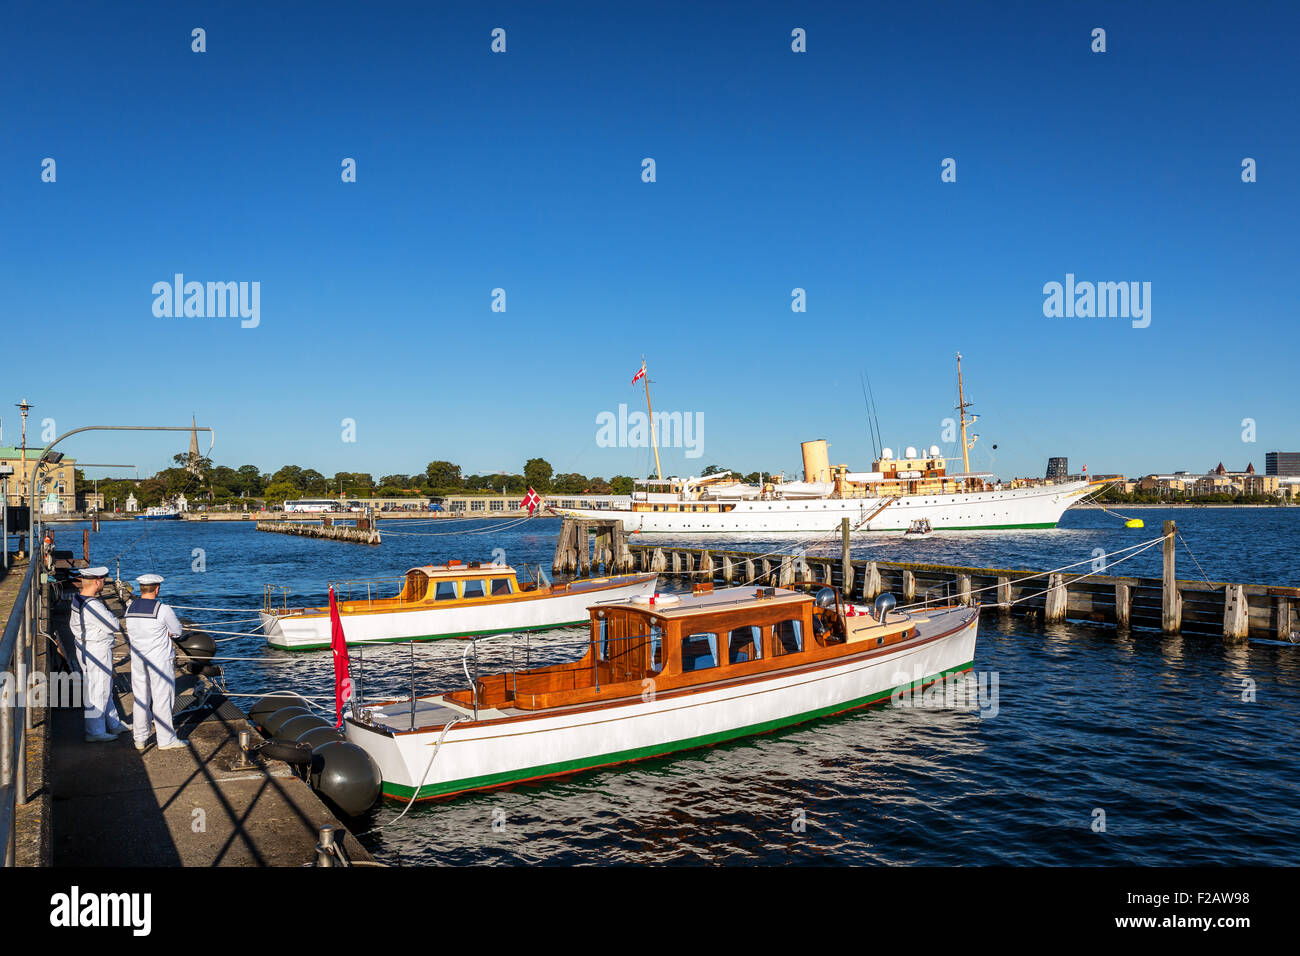 The Royal Yacht Dannebrog and supporting boats in Copenhagen Harbor, Denmark Stock Photo